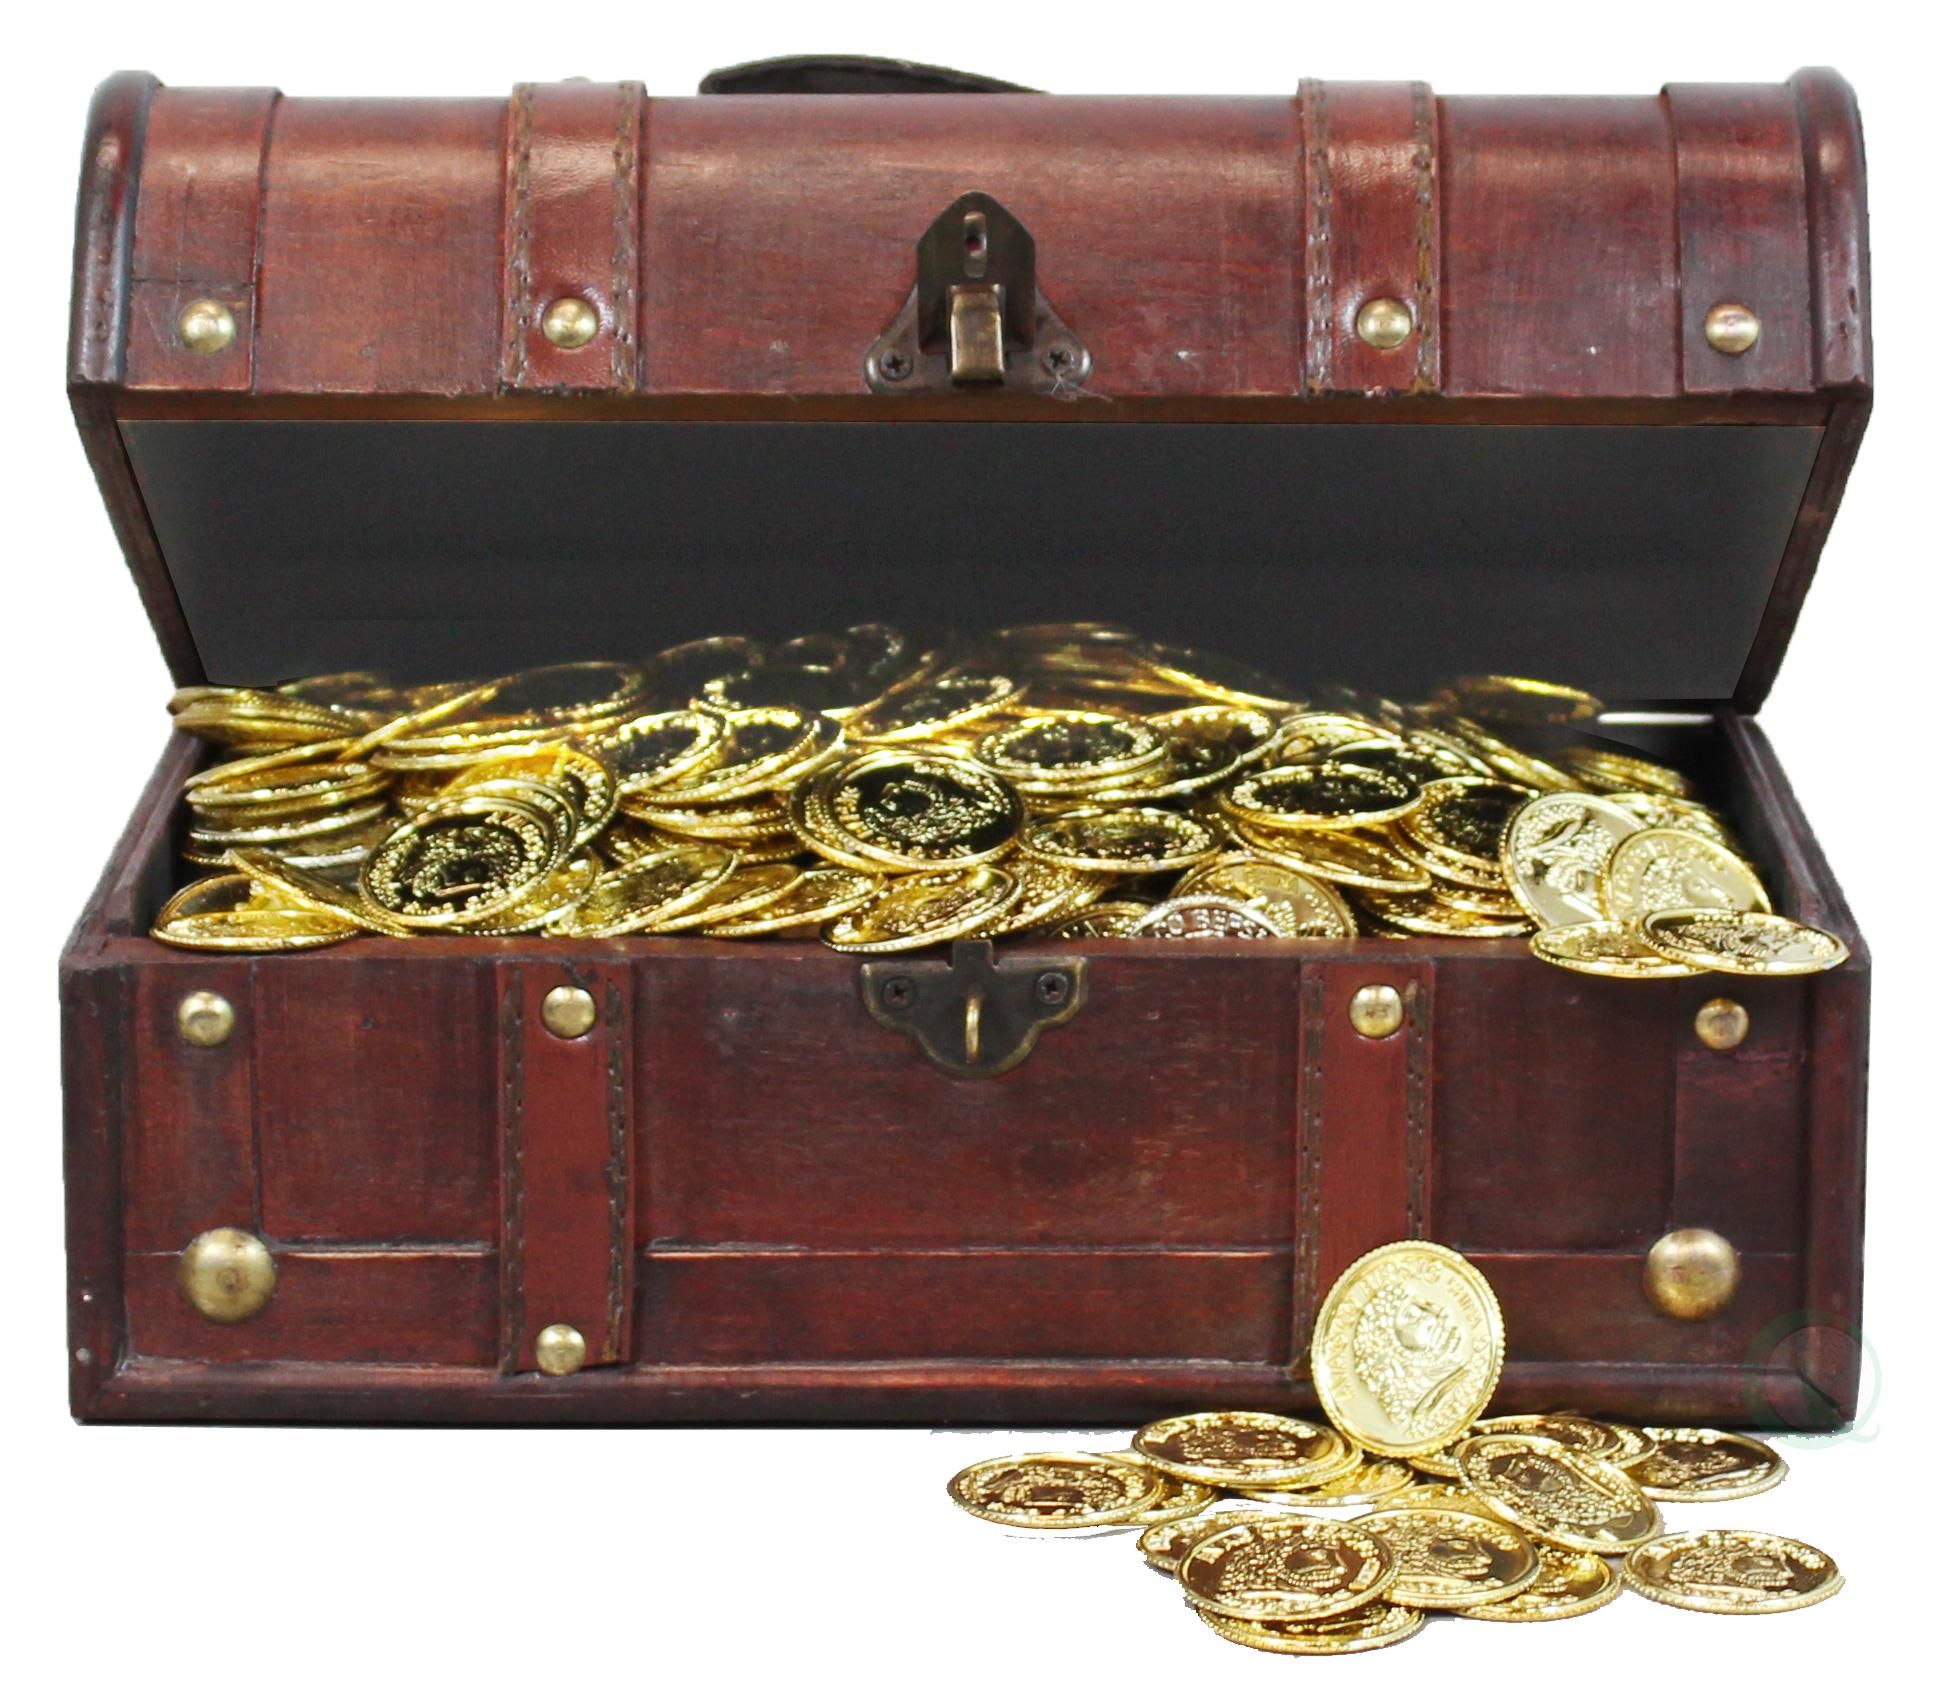 decorative wood treasure box wooden trunk chest - Decorative Wooden Boxes